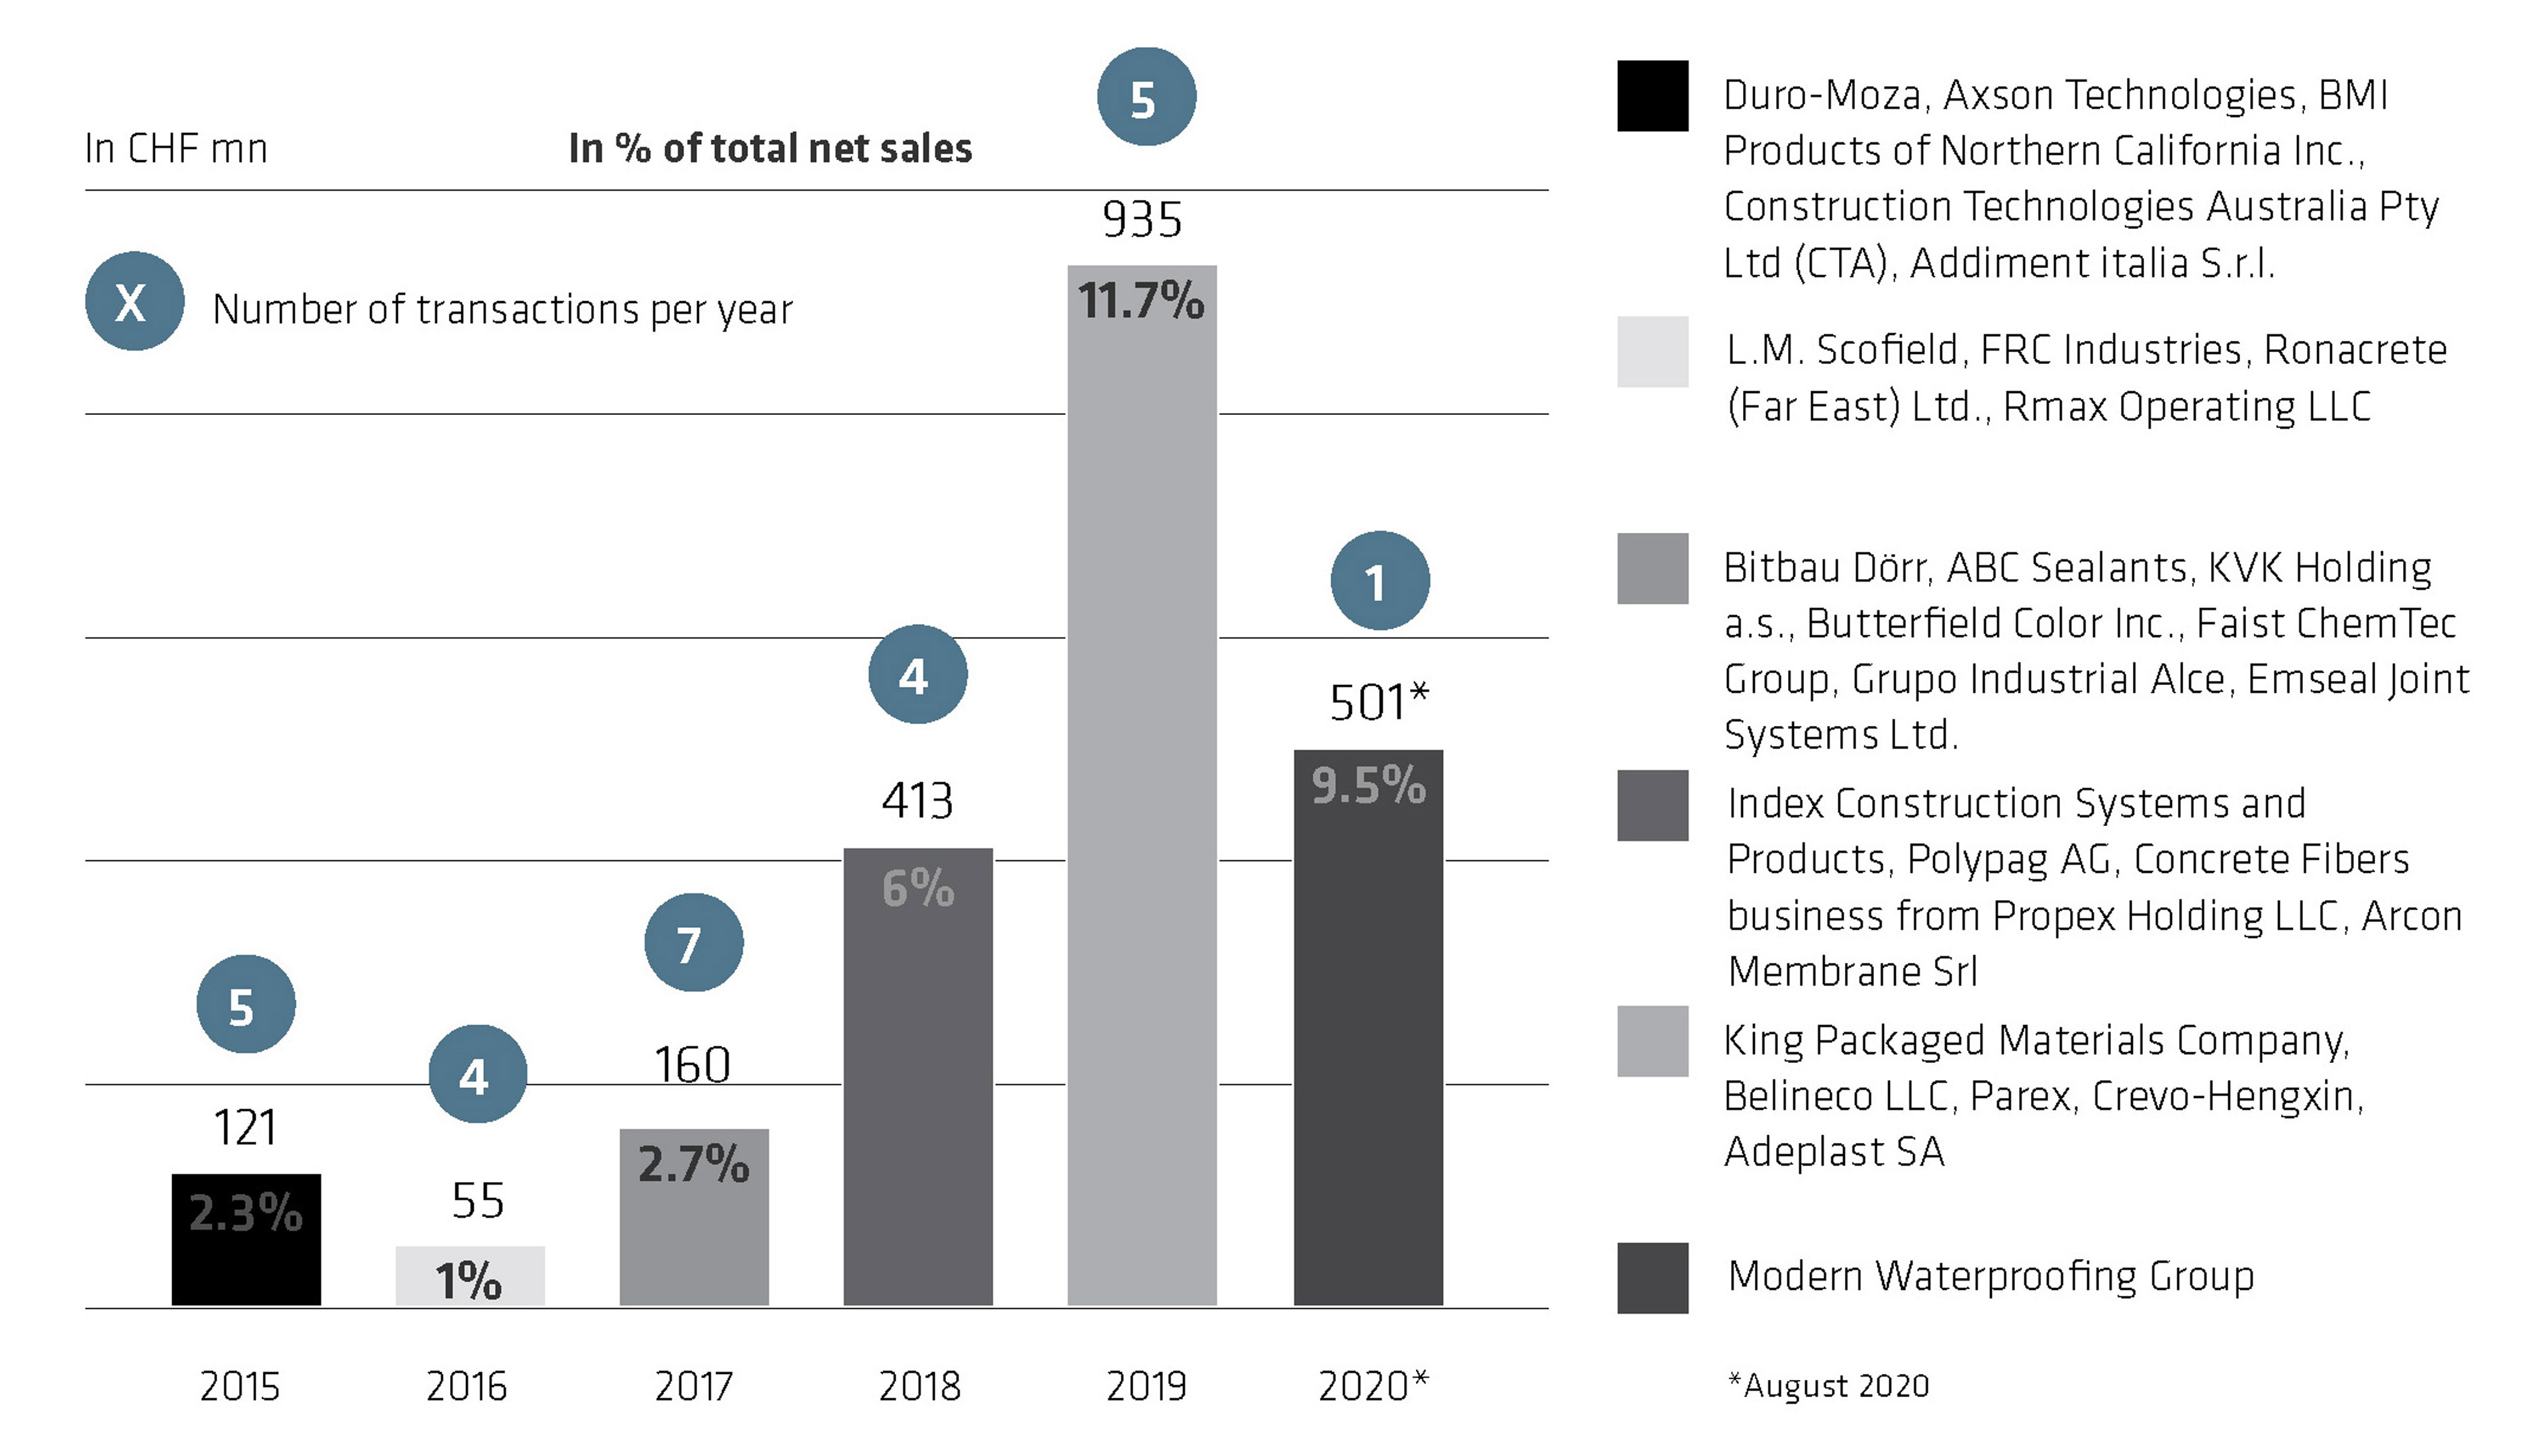 Acquisition impact per year: 2015-2020